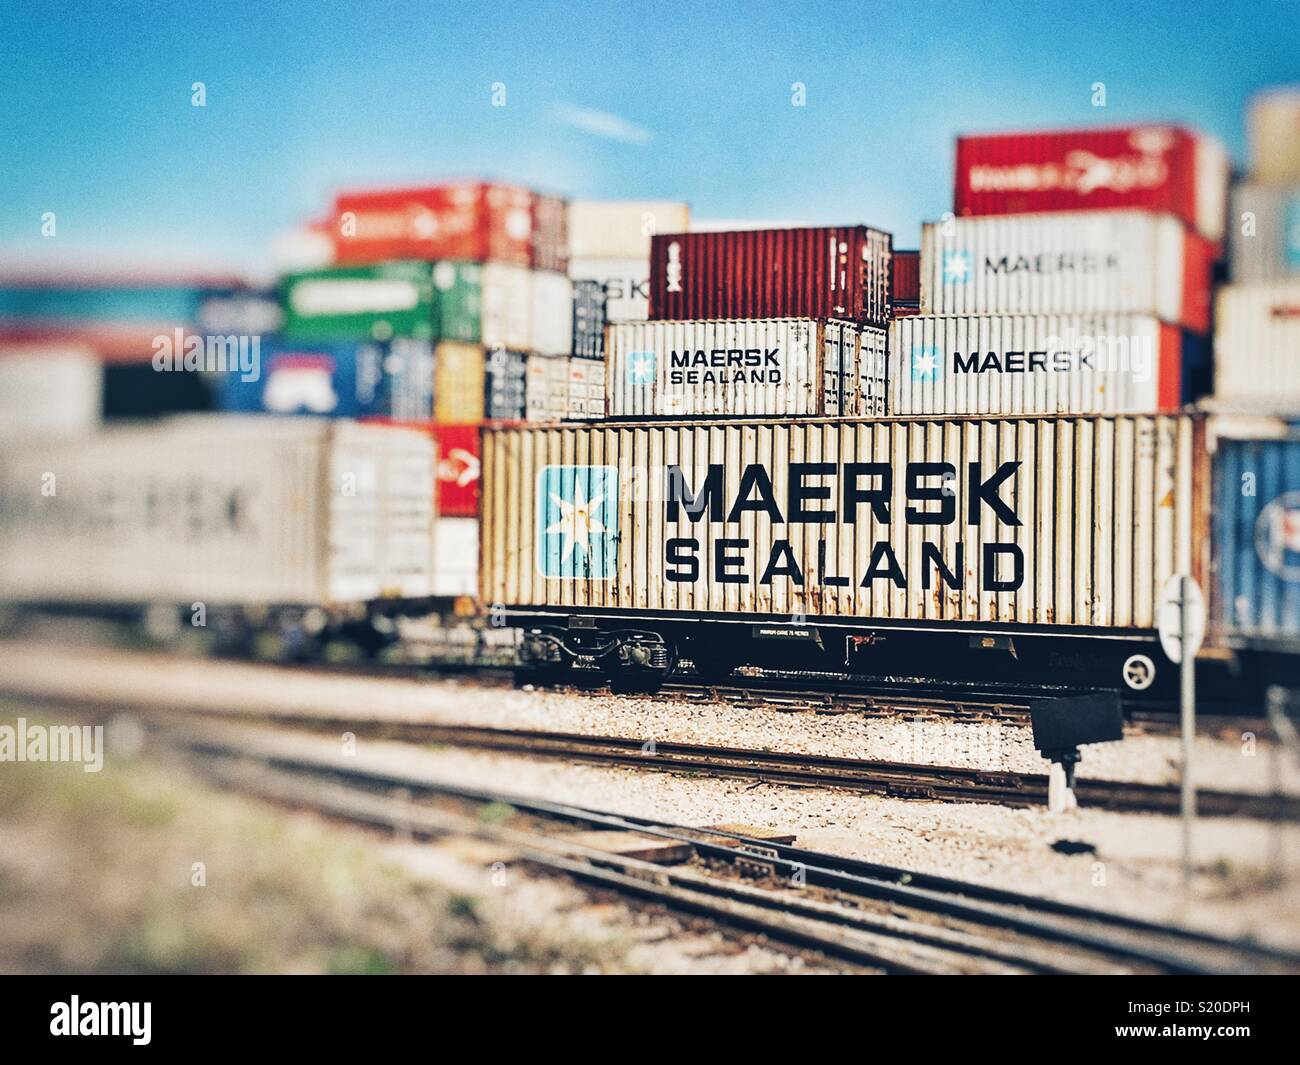 Maersk Sealand containers transported from the Port of Felixstowe by rail from the north terminal, Suffolk, England. - Stock Image